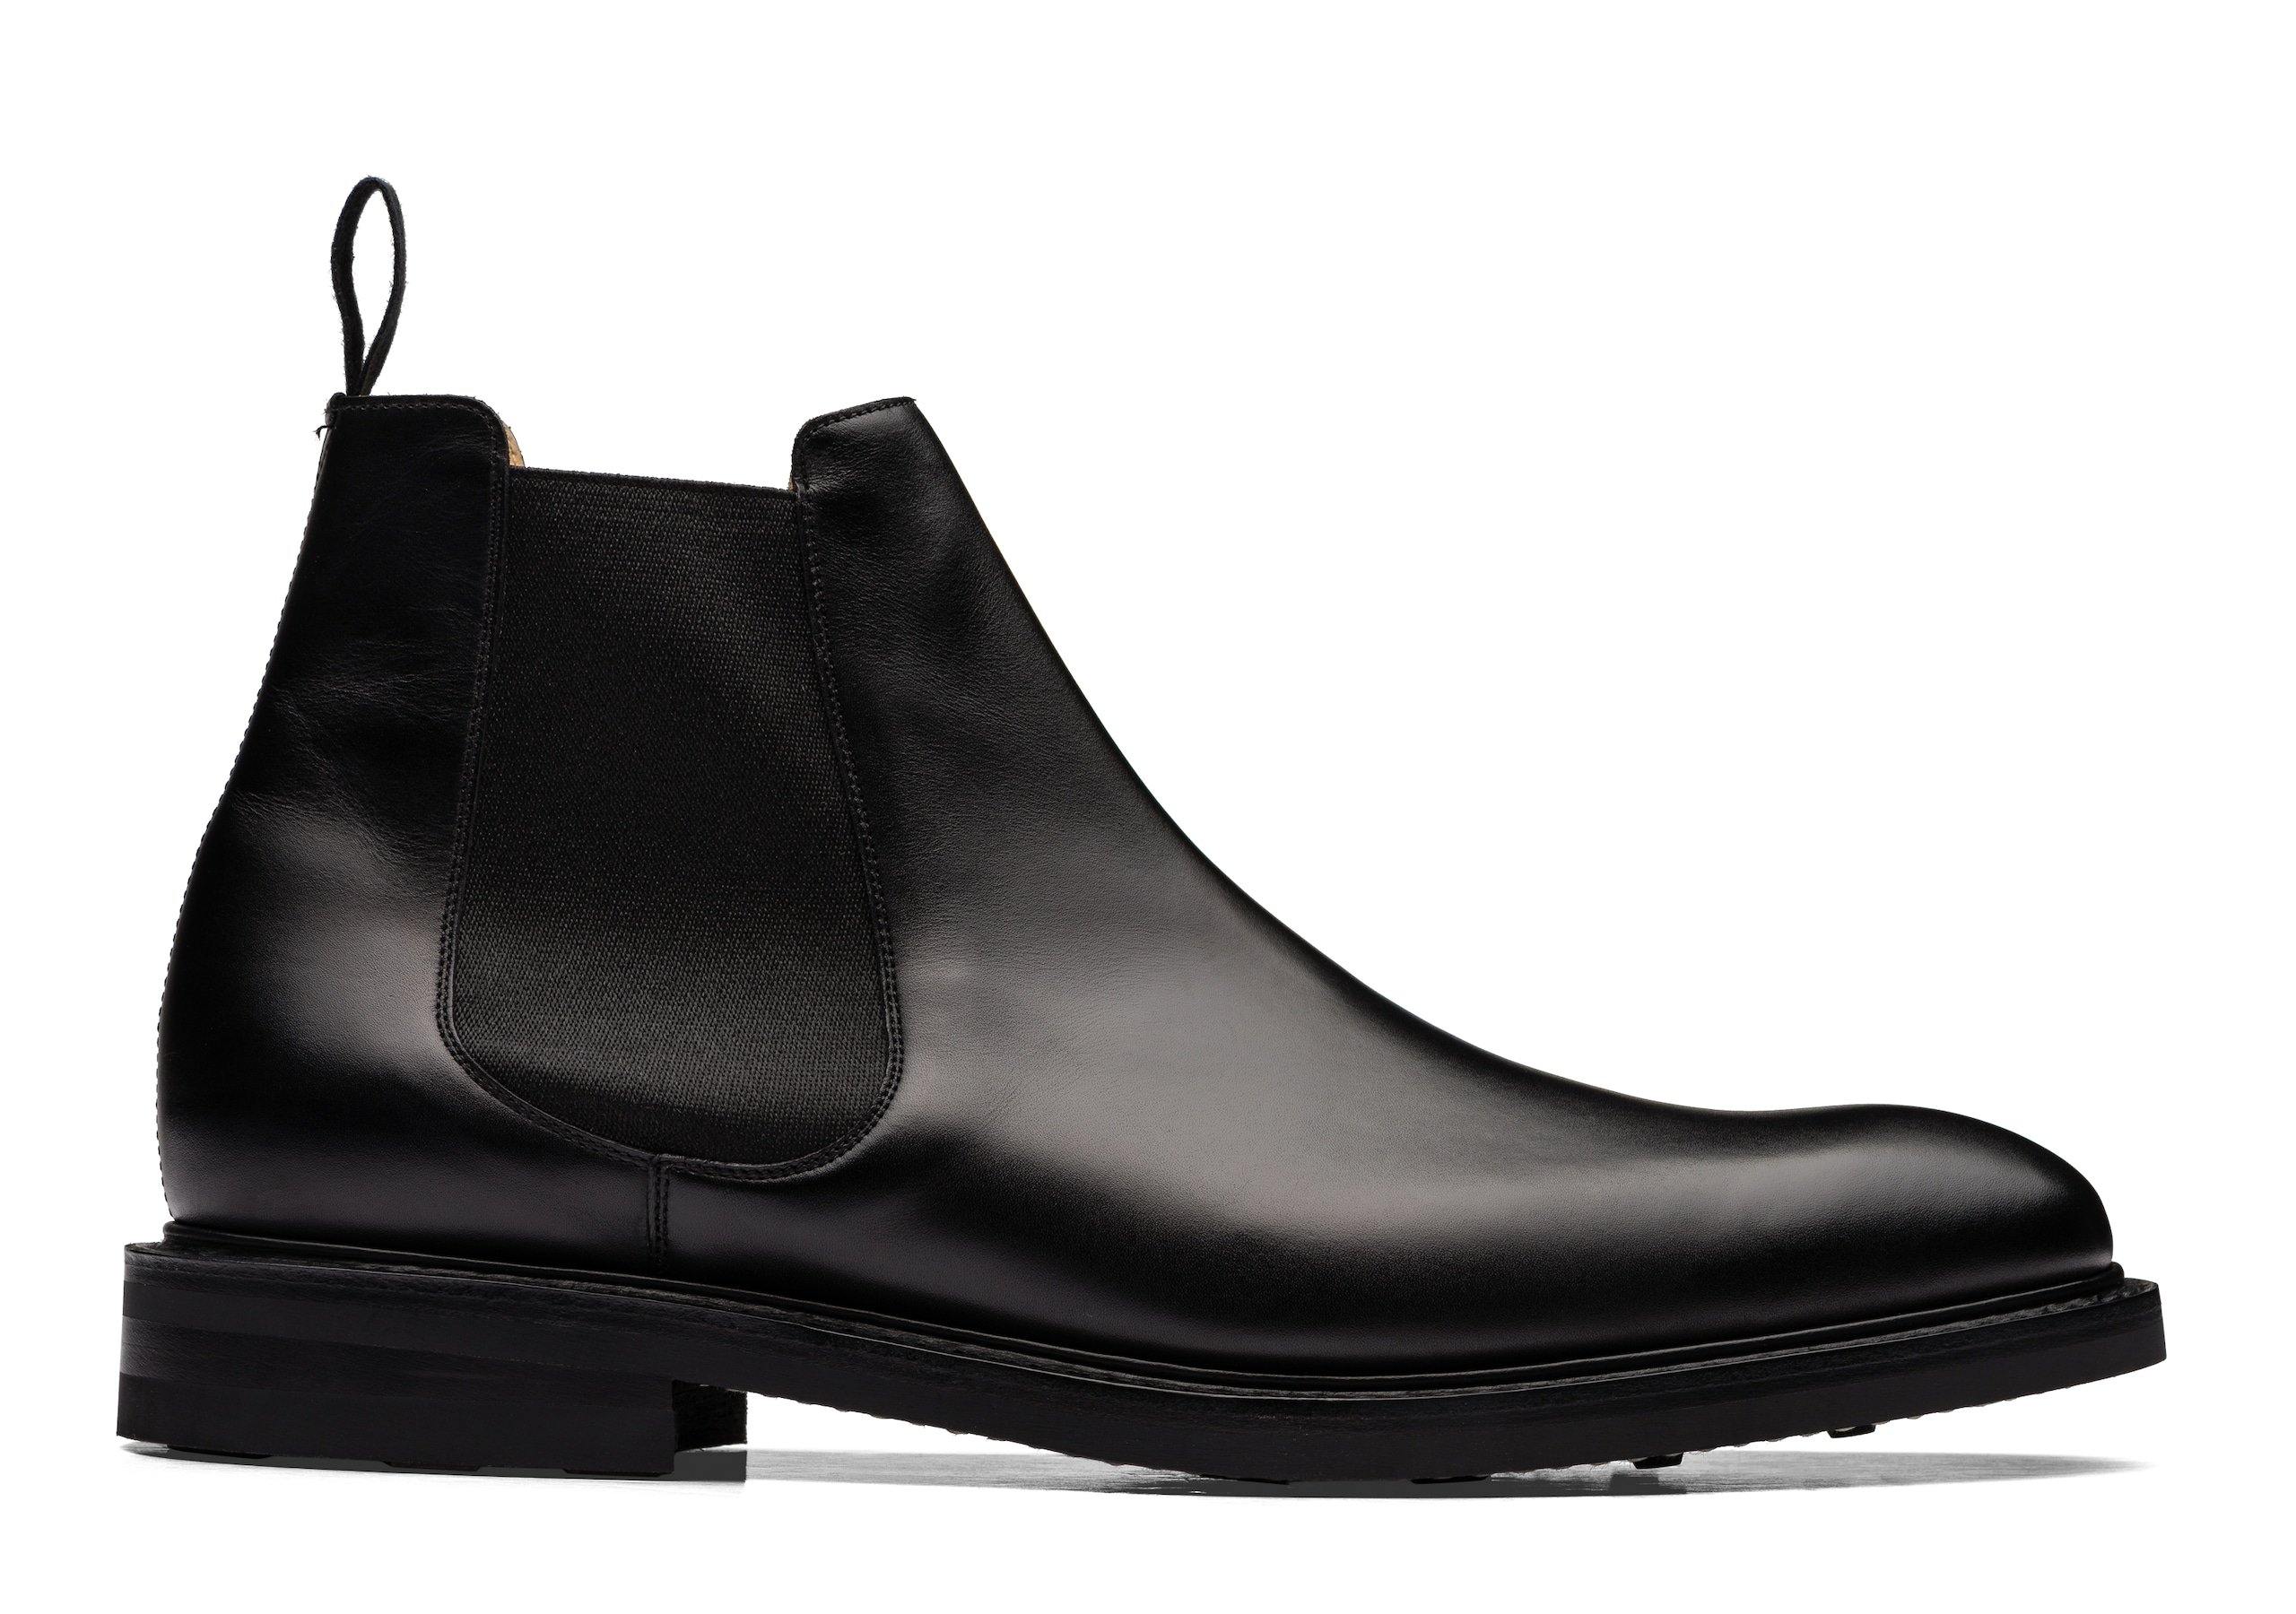 Goodward r 173 Church's Calf Leather Chelsea Boot Black